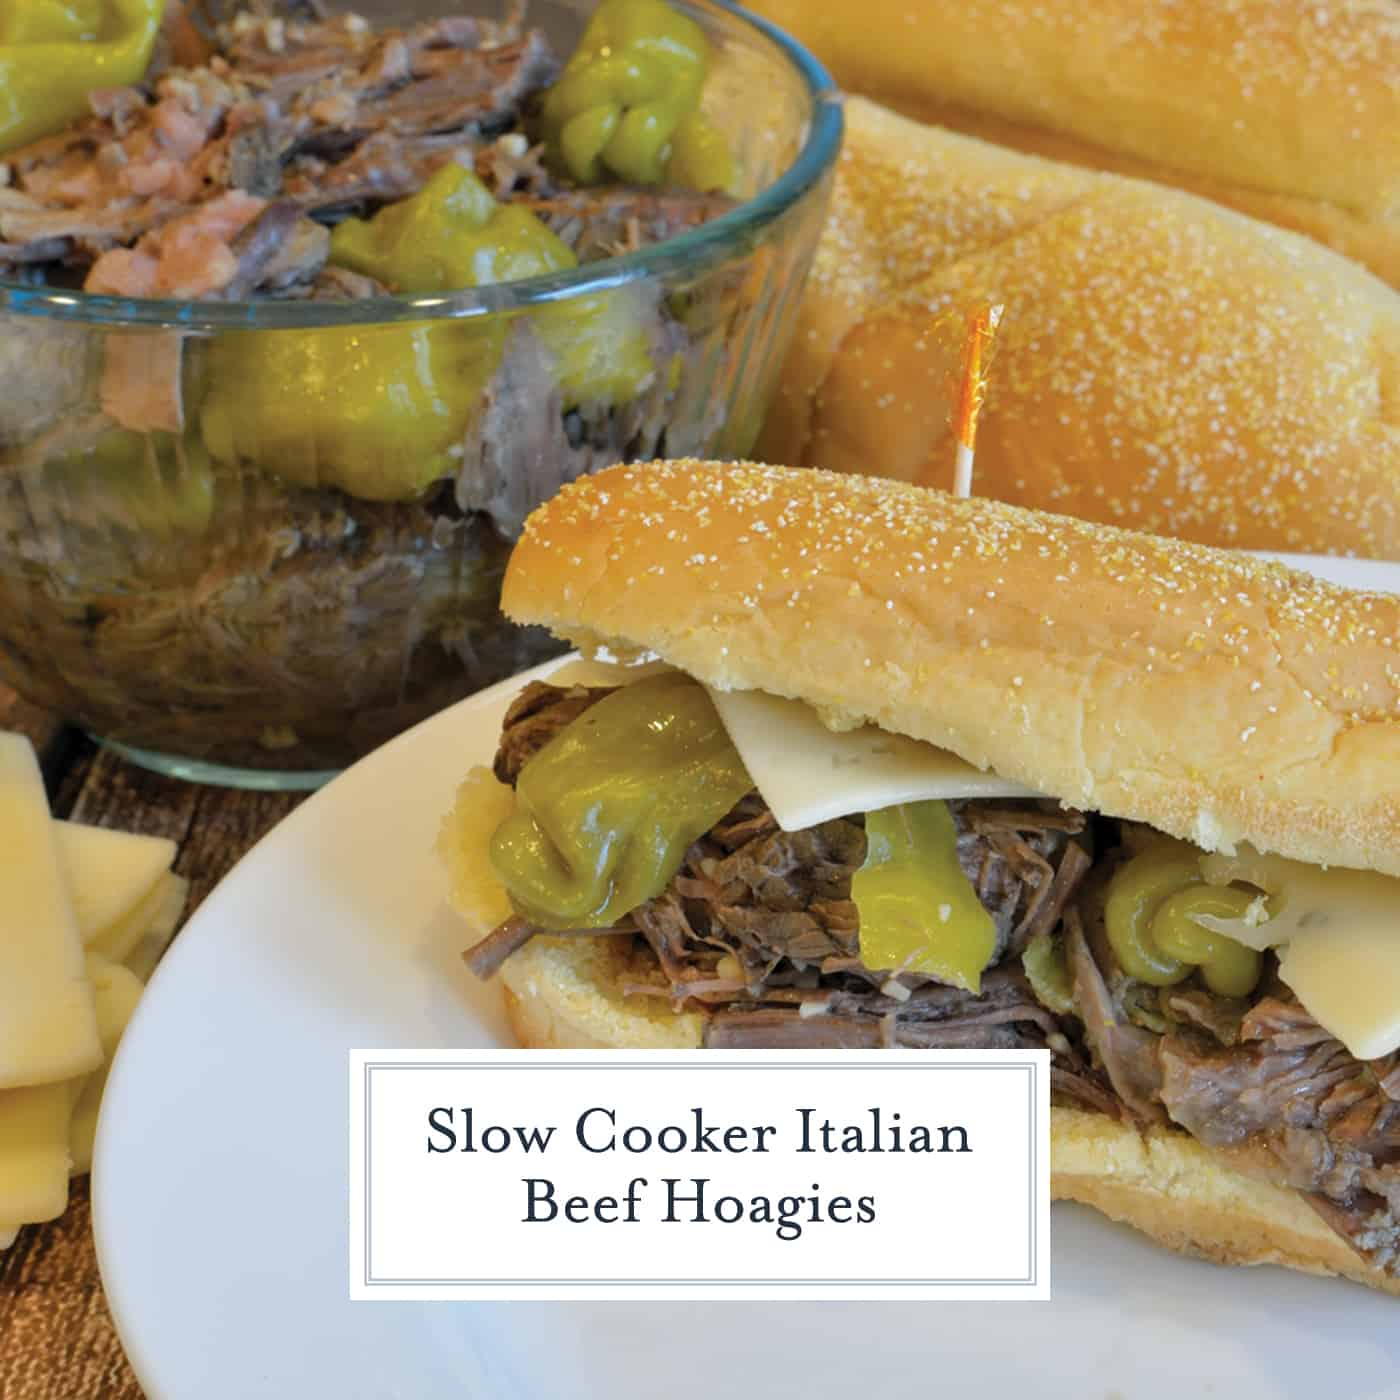 Slow Cooker Italian Beef Hoagies is pot roast cooked in pepperoncini chiles until fork tender, then smothered in cheese and serve on a hoagie roll. Great for parties too! #italianbeefhoagies #mississippipotroast www.savoryexperiments.com